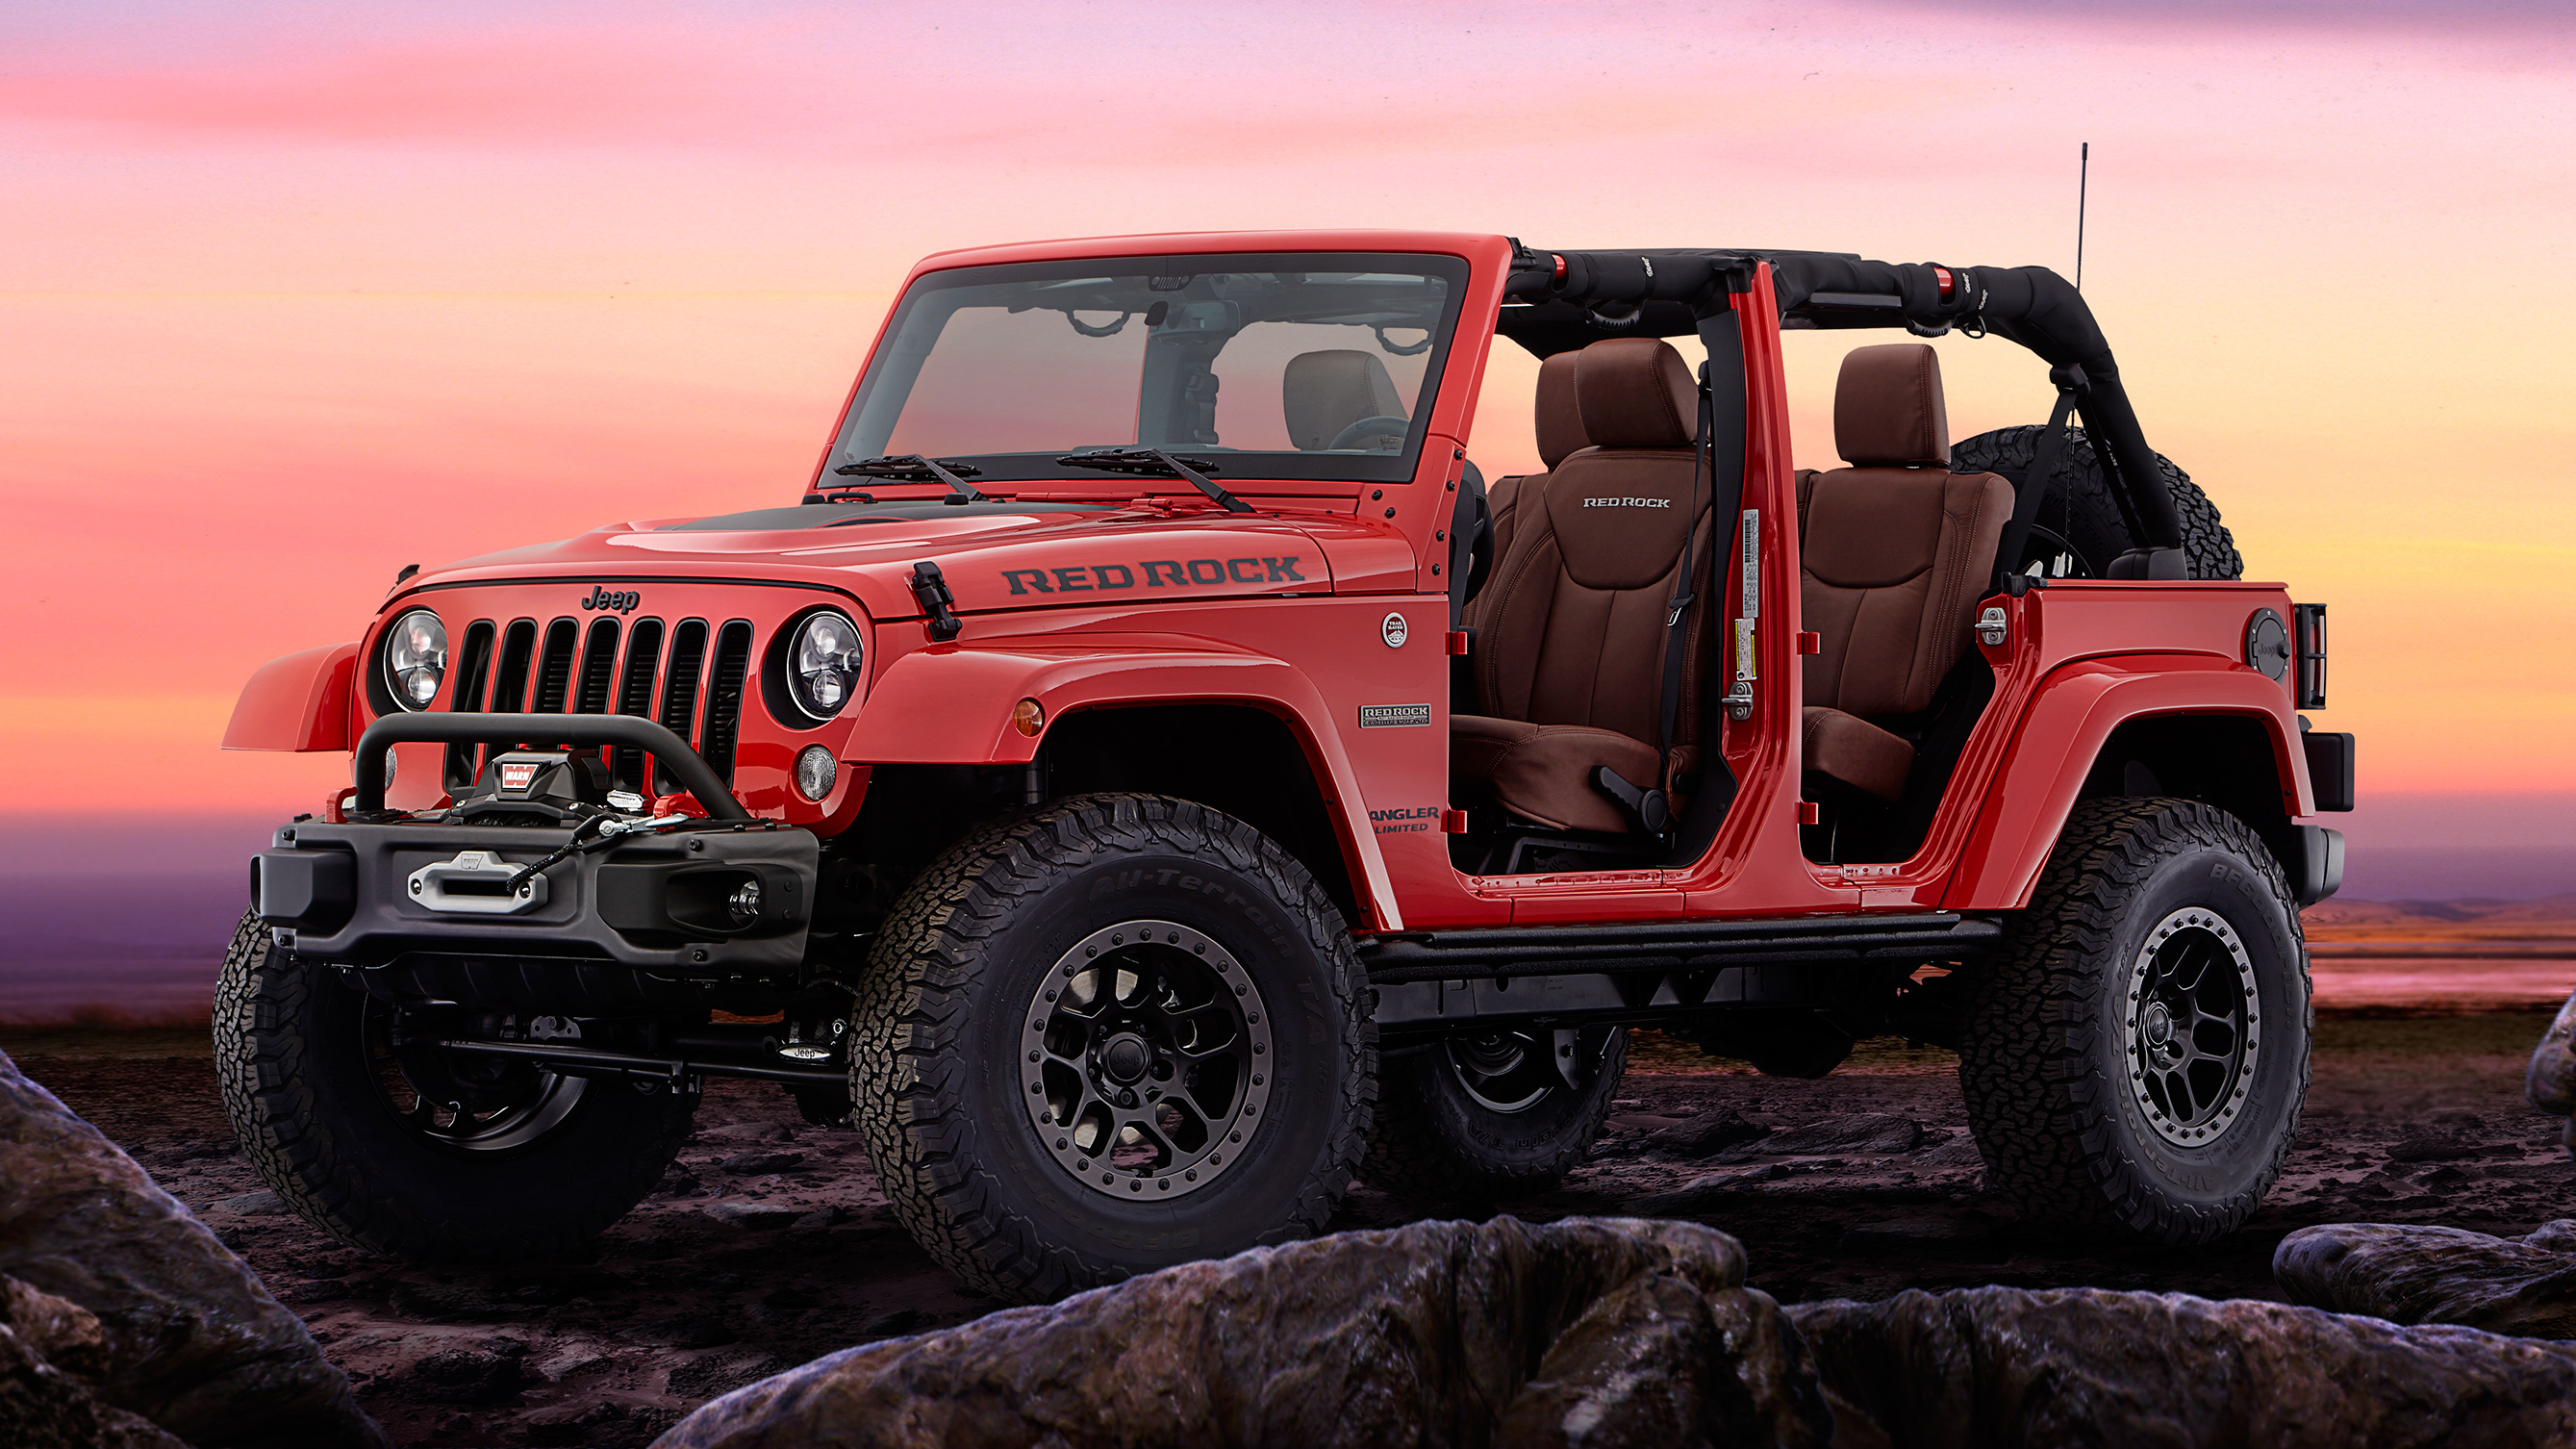 Jeep Car Images Hd: 2017 Jeep Wrangler Red Rock Edition Wallpaper